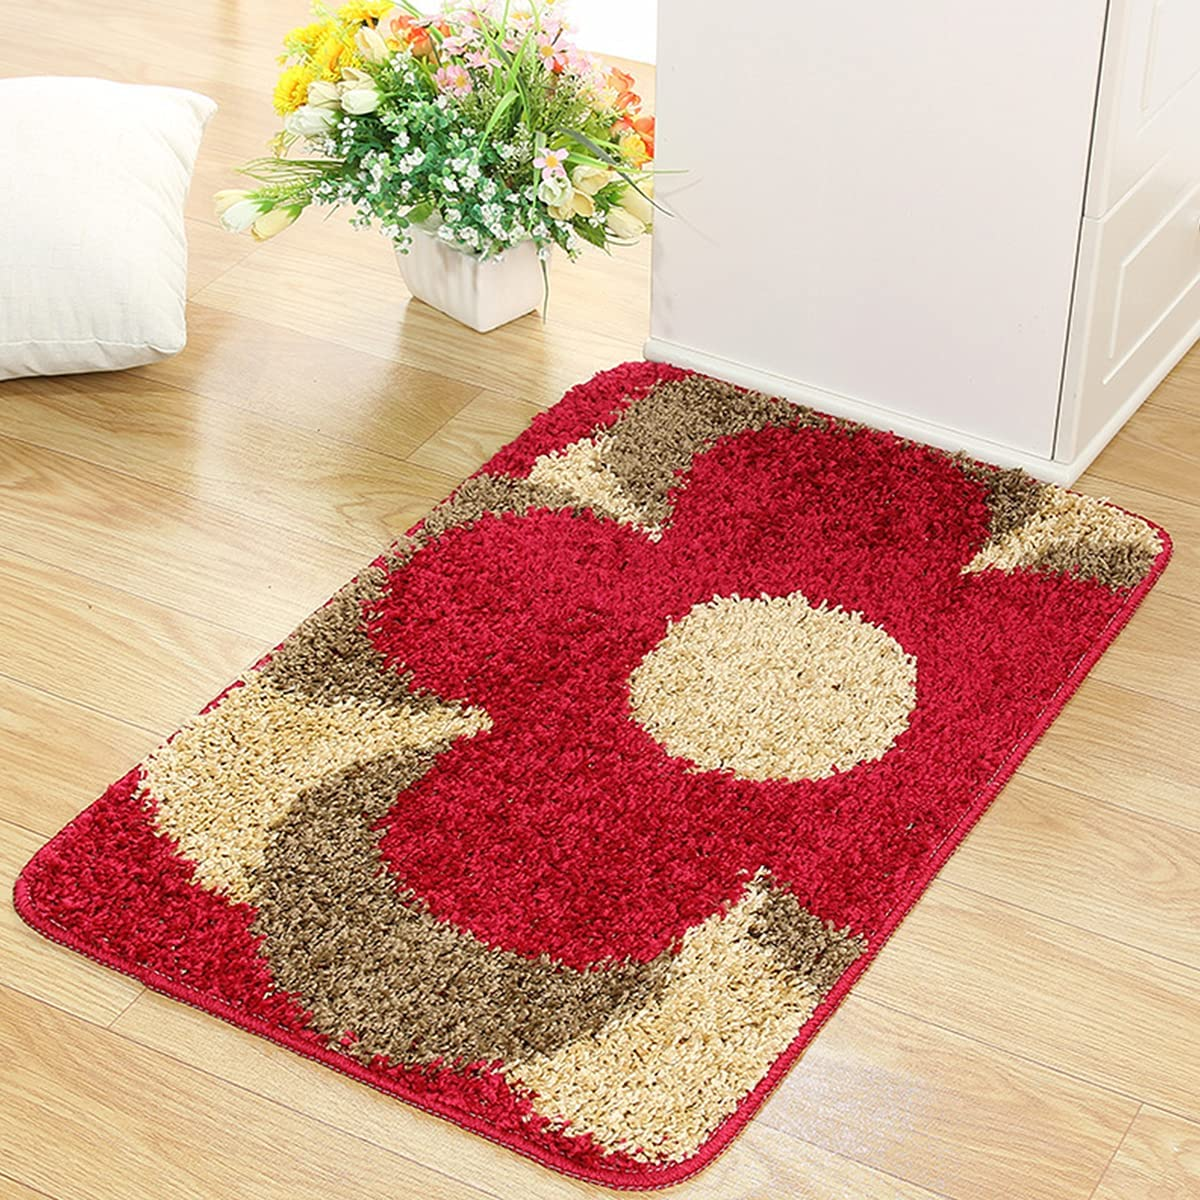 Selling and selling jia cool Bathroom Carpet Non-Slip Bath 23.6X 35.4 mat Absorbe Regular store